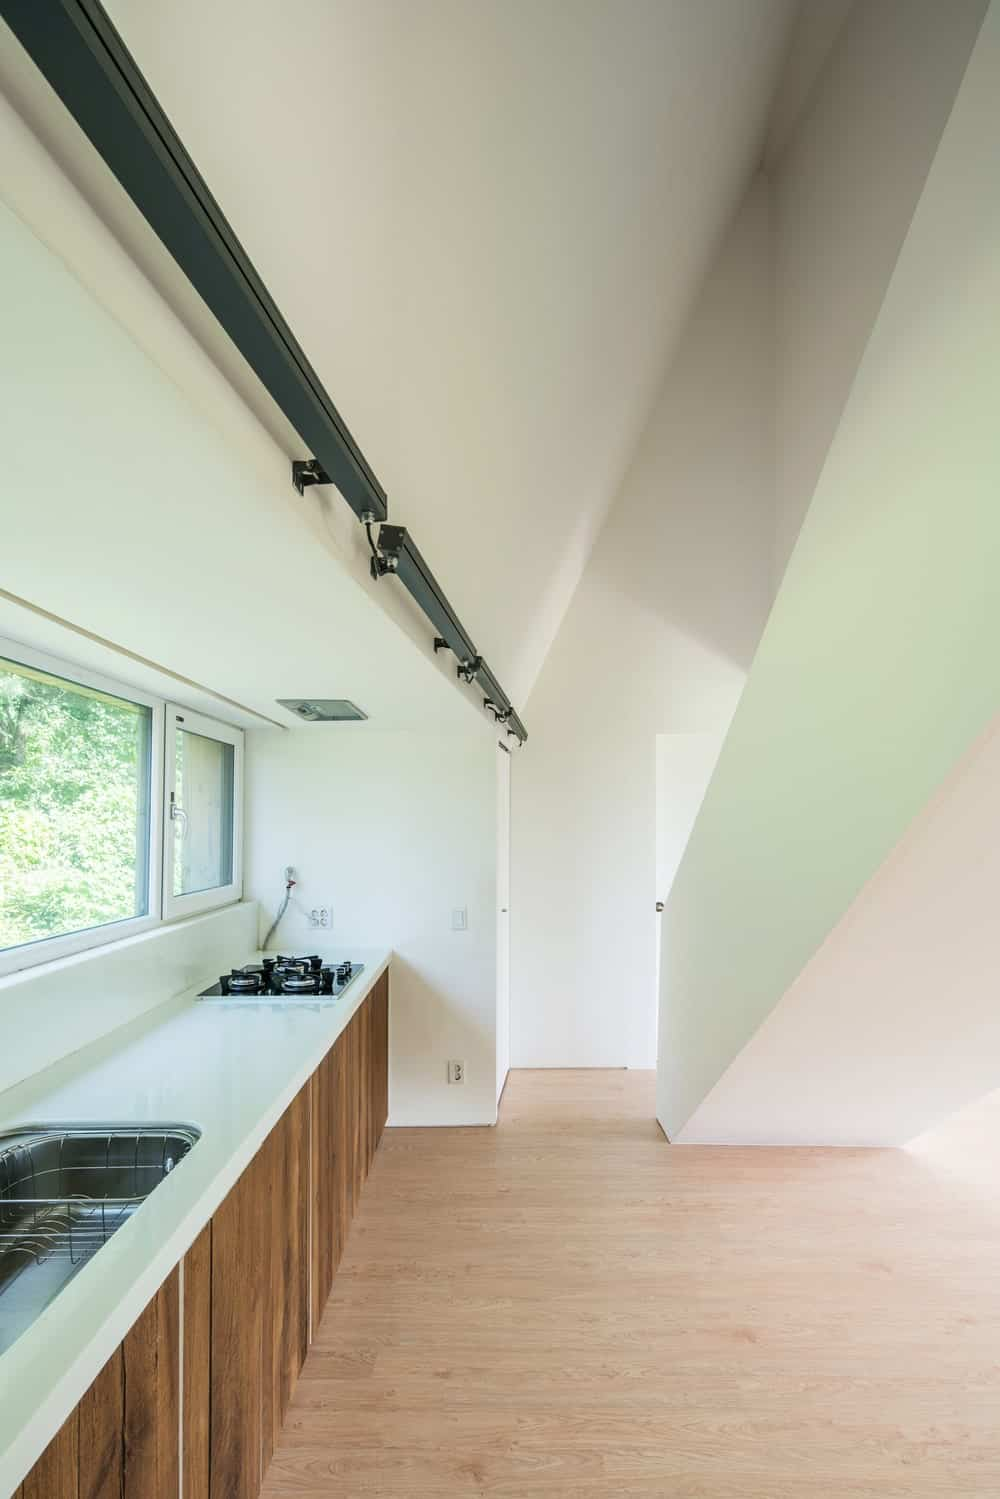 The kitchen has a simple counter by the windows that supports the cabinetry that has wooden cabinets by the saircase.